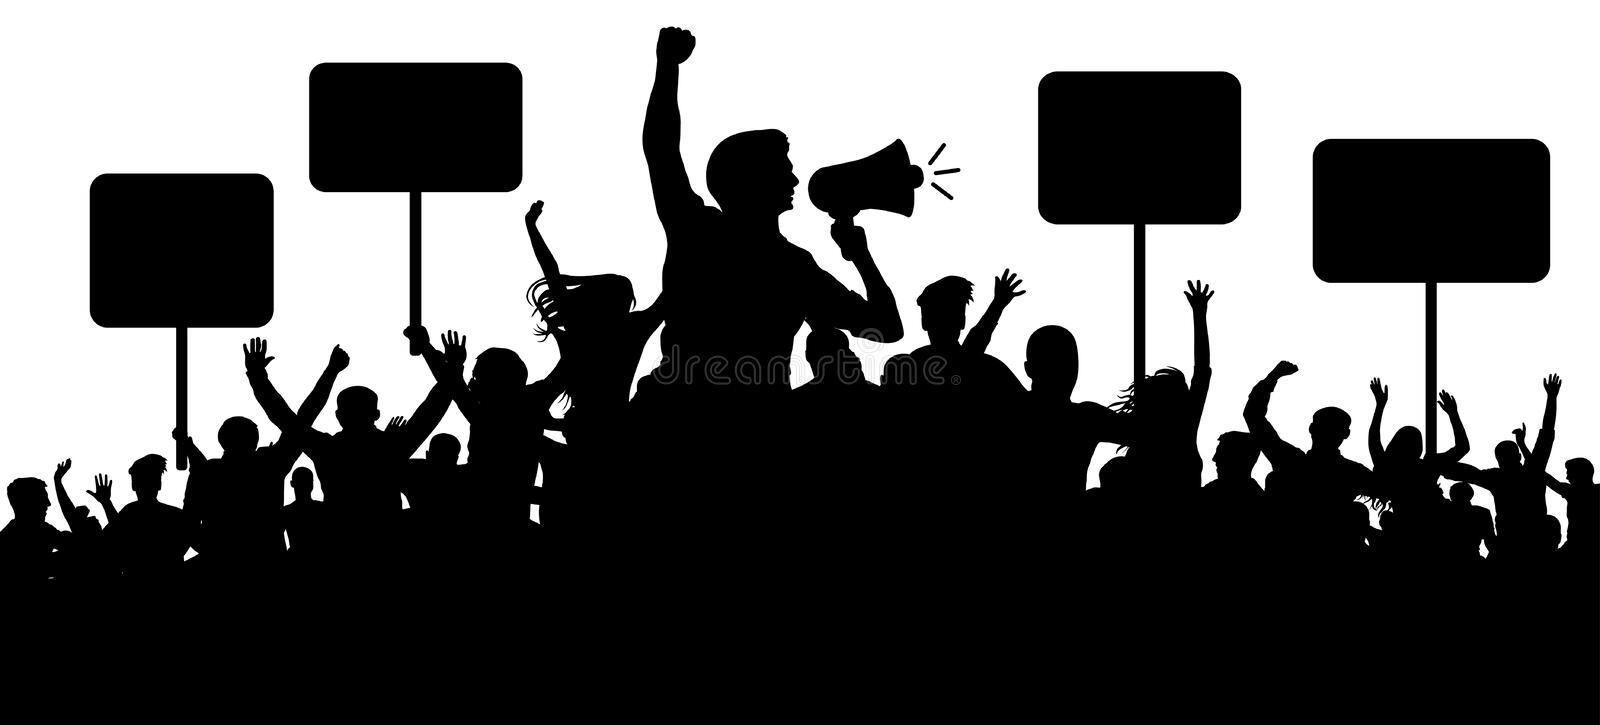 Crowd of people silhouette vector. Transparent, protest slogans. Speaker, loudspeaker, orator, spokesman. Applause of a cheerful people mob. Sports fans vector illustration